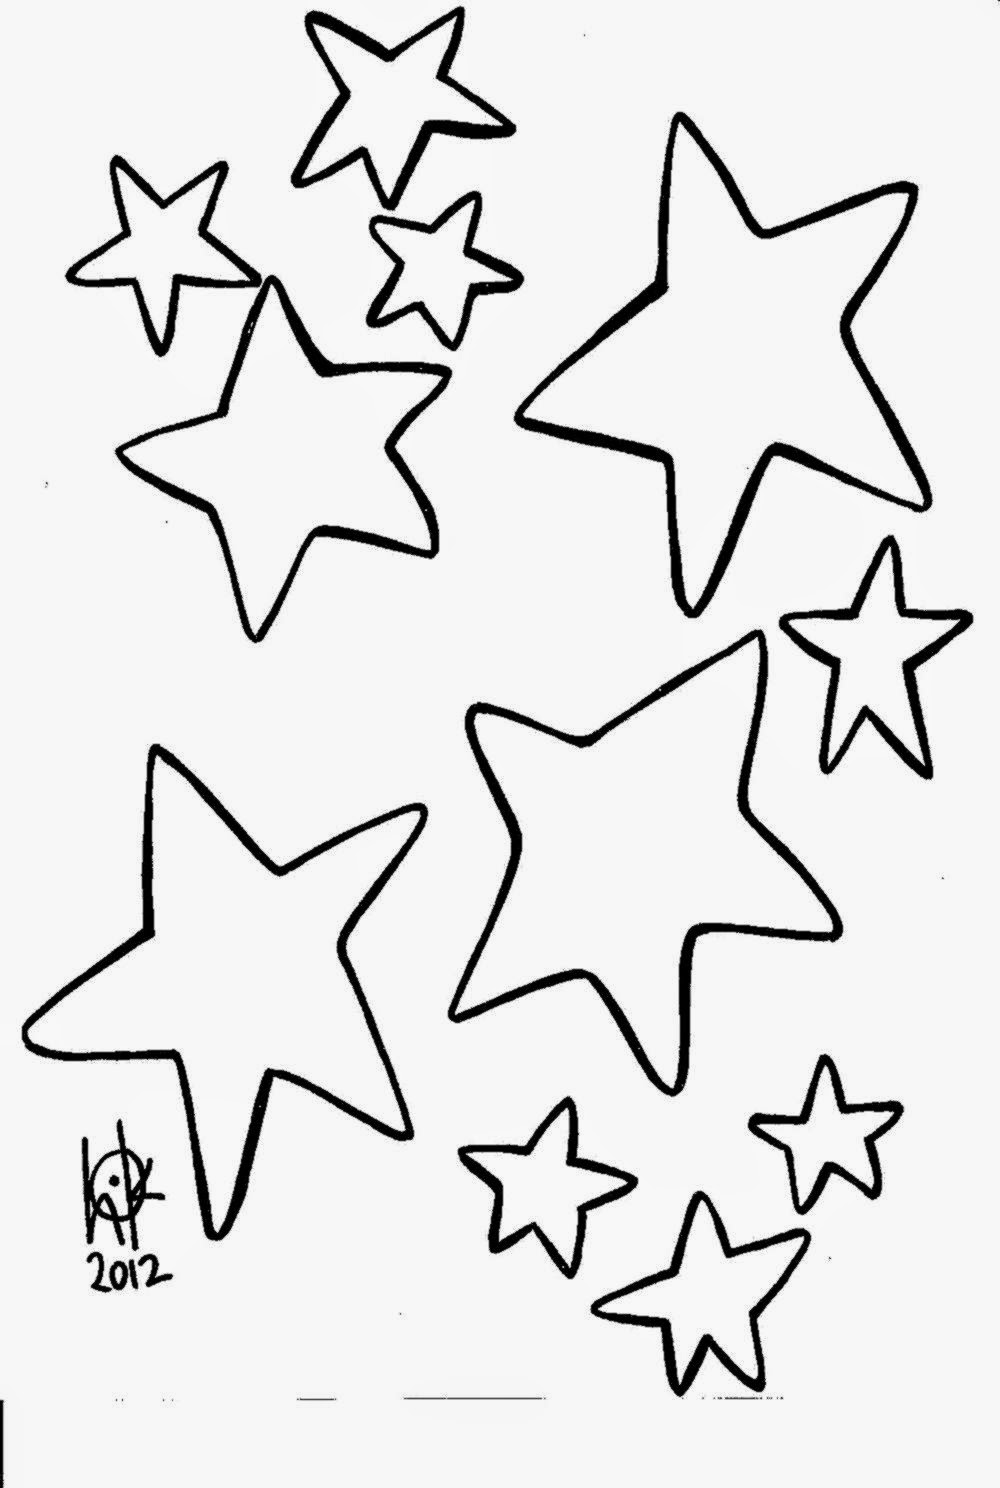 coloring picture of a star free coloring pictures